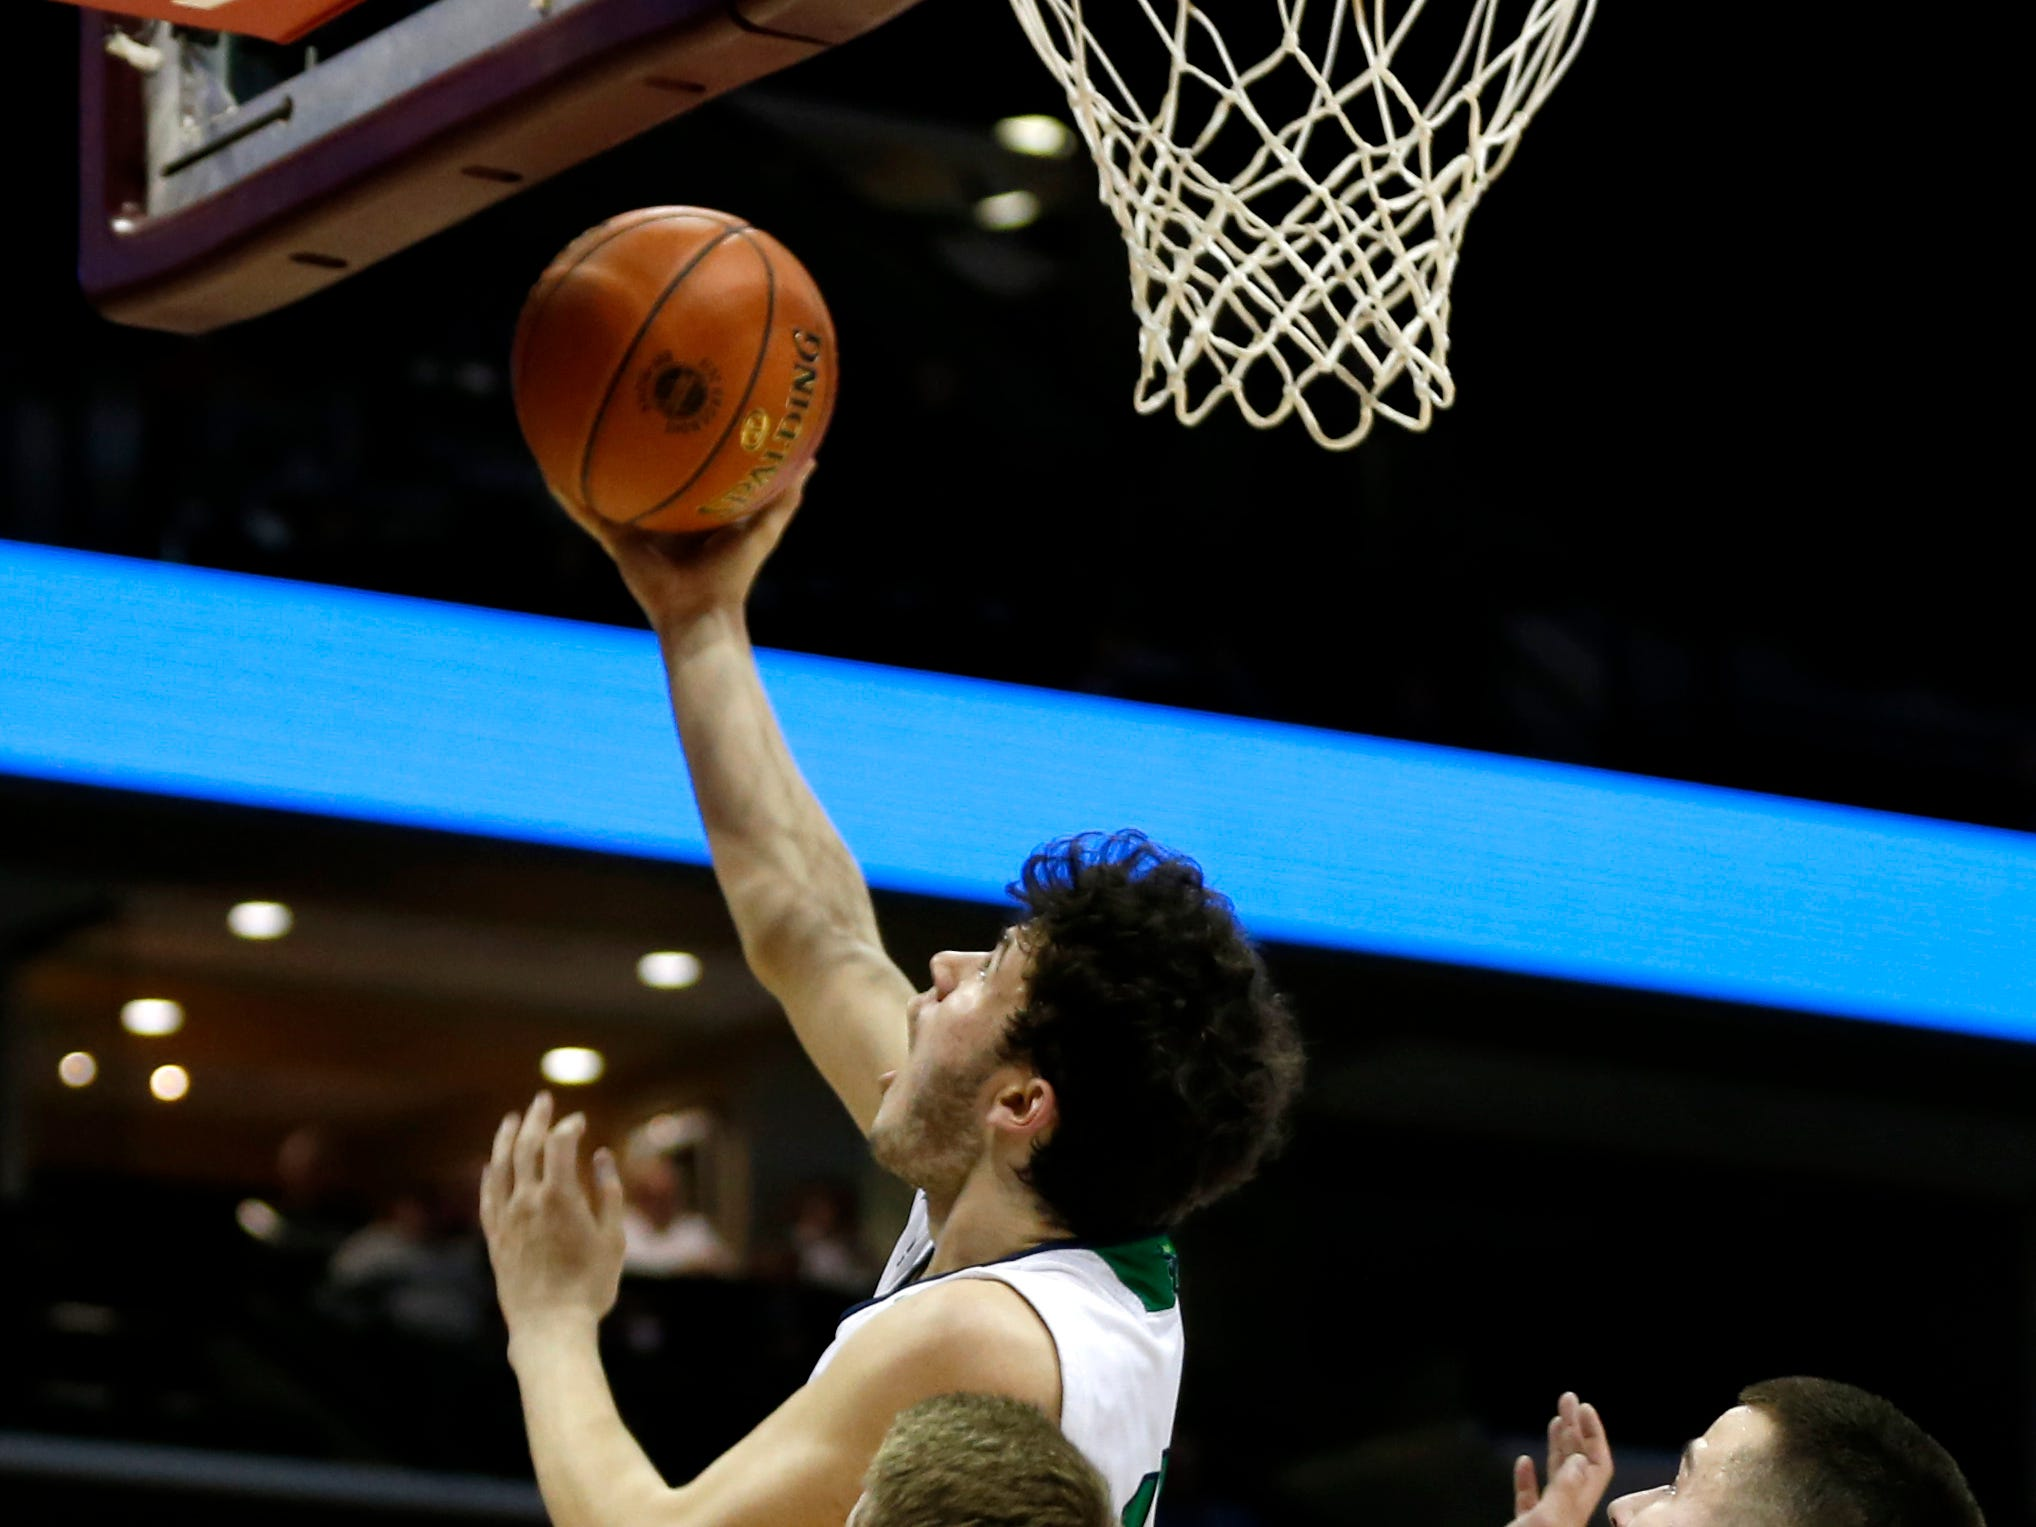 The Springfield Catholic Fightin' Irish take on the St. Paul Lutheran Saints in the semifinal round of Class 3 state basketball at JQH Arena on Thursday, March 7, 2019